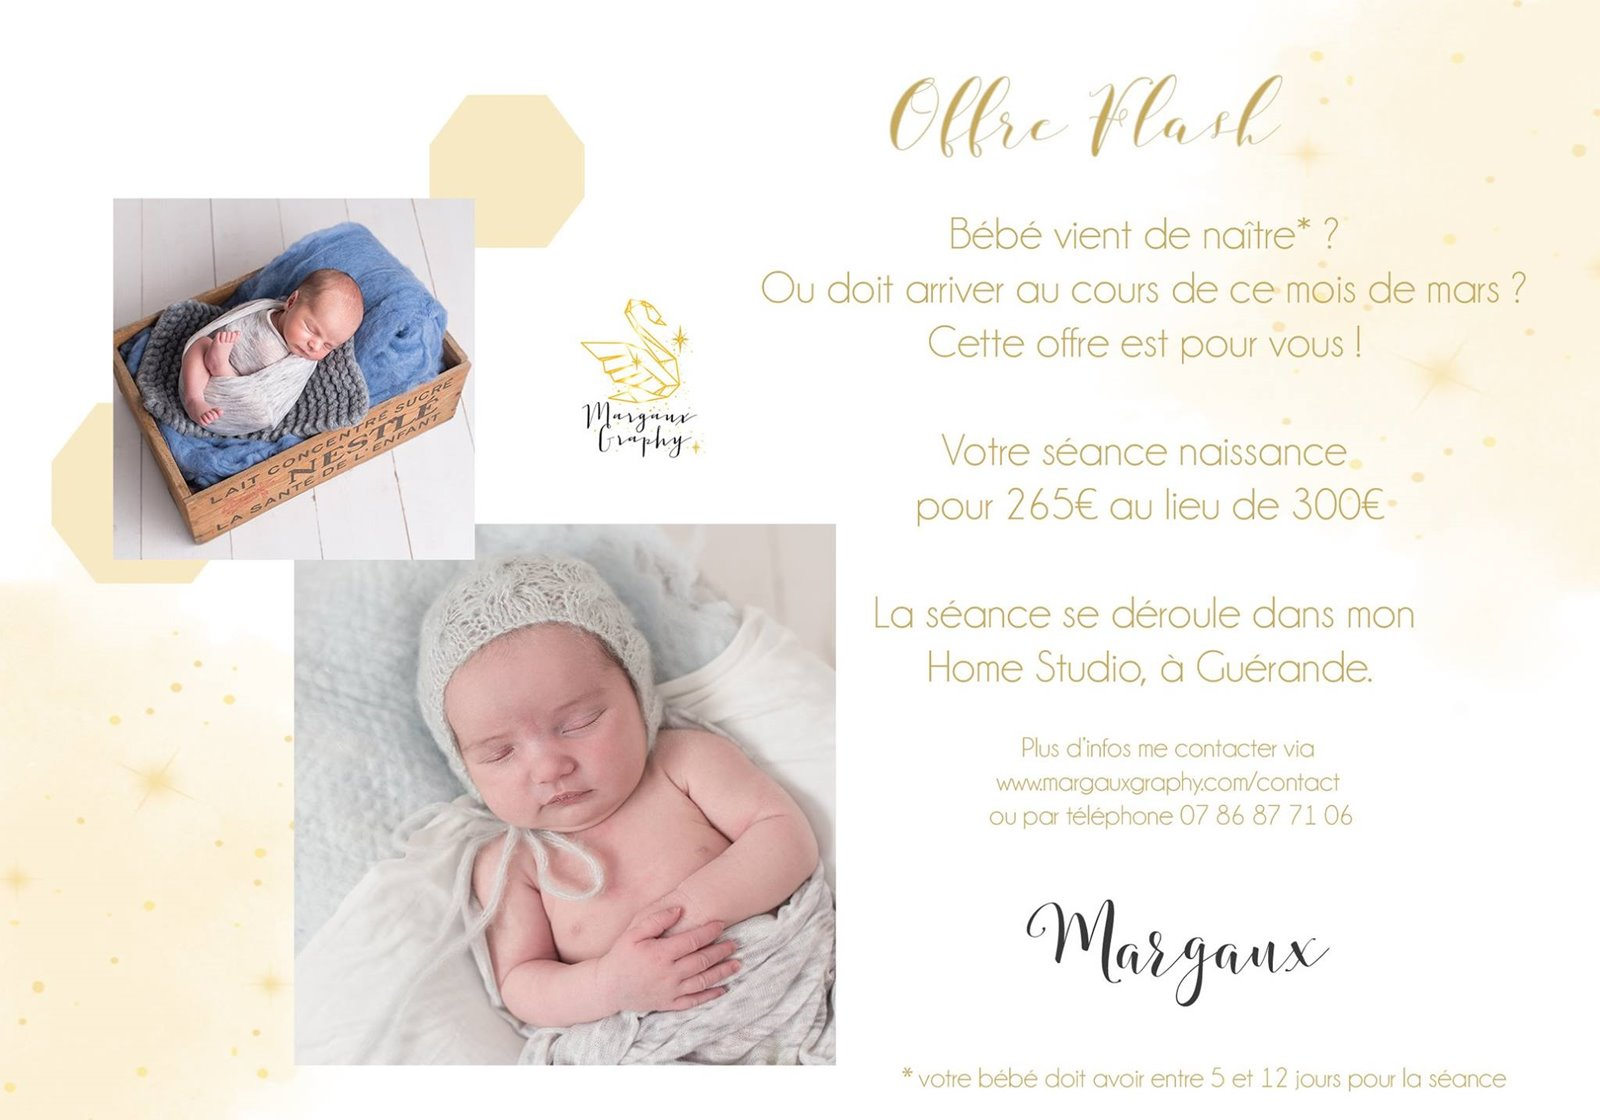 Margaux graphy interview offre flash